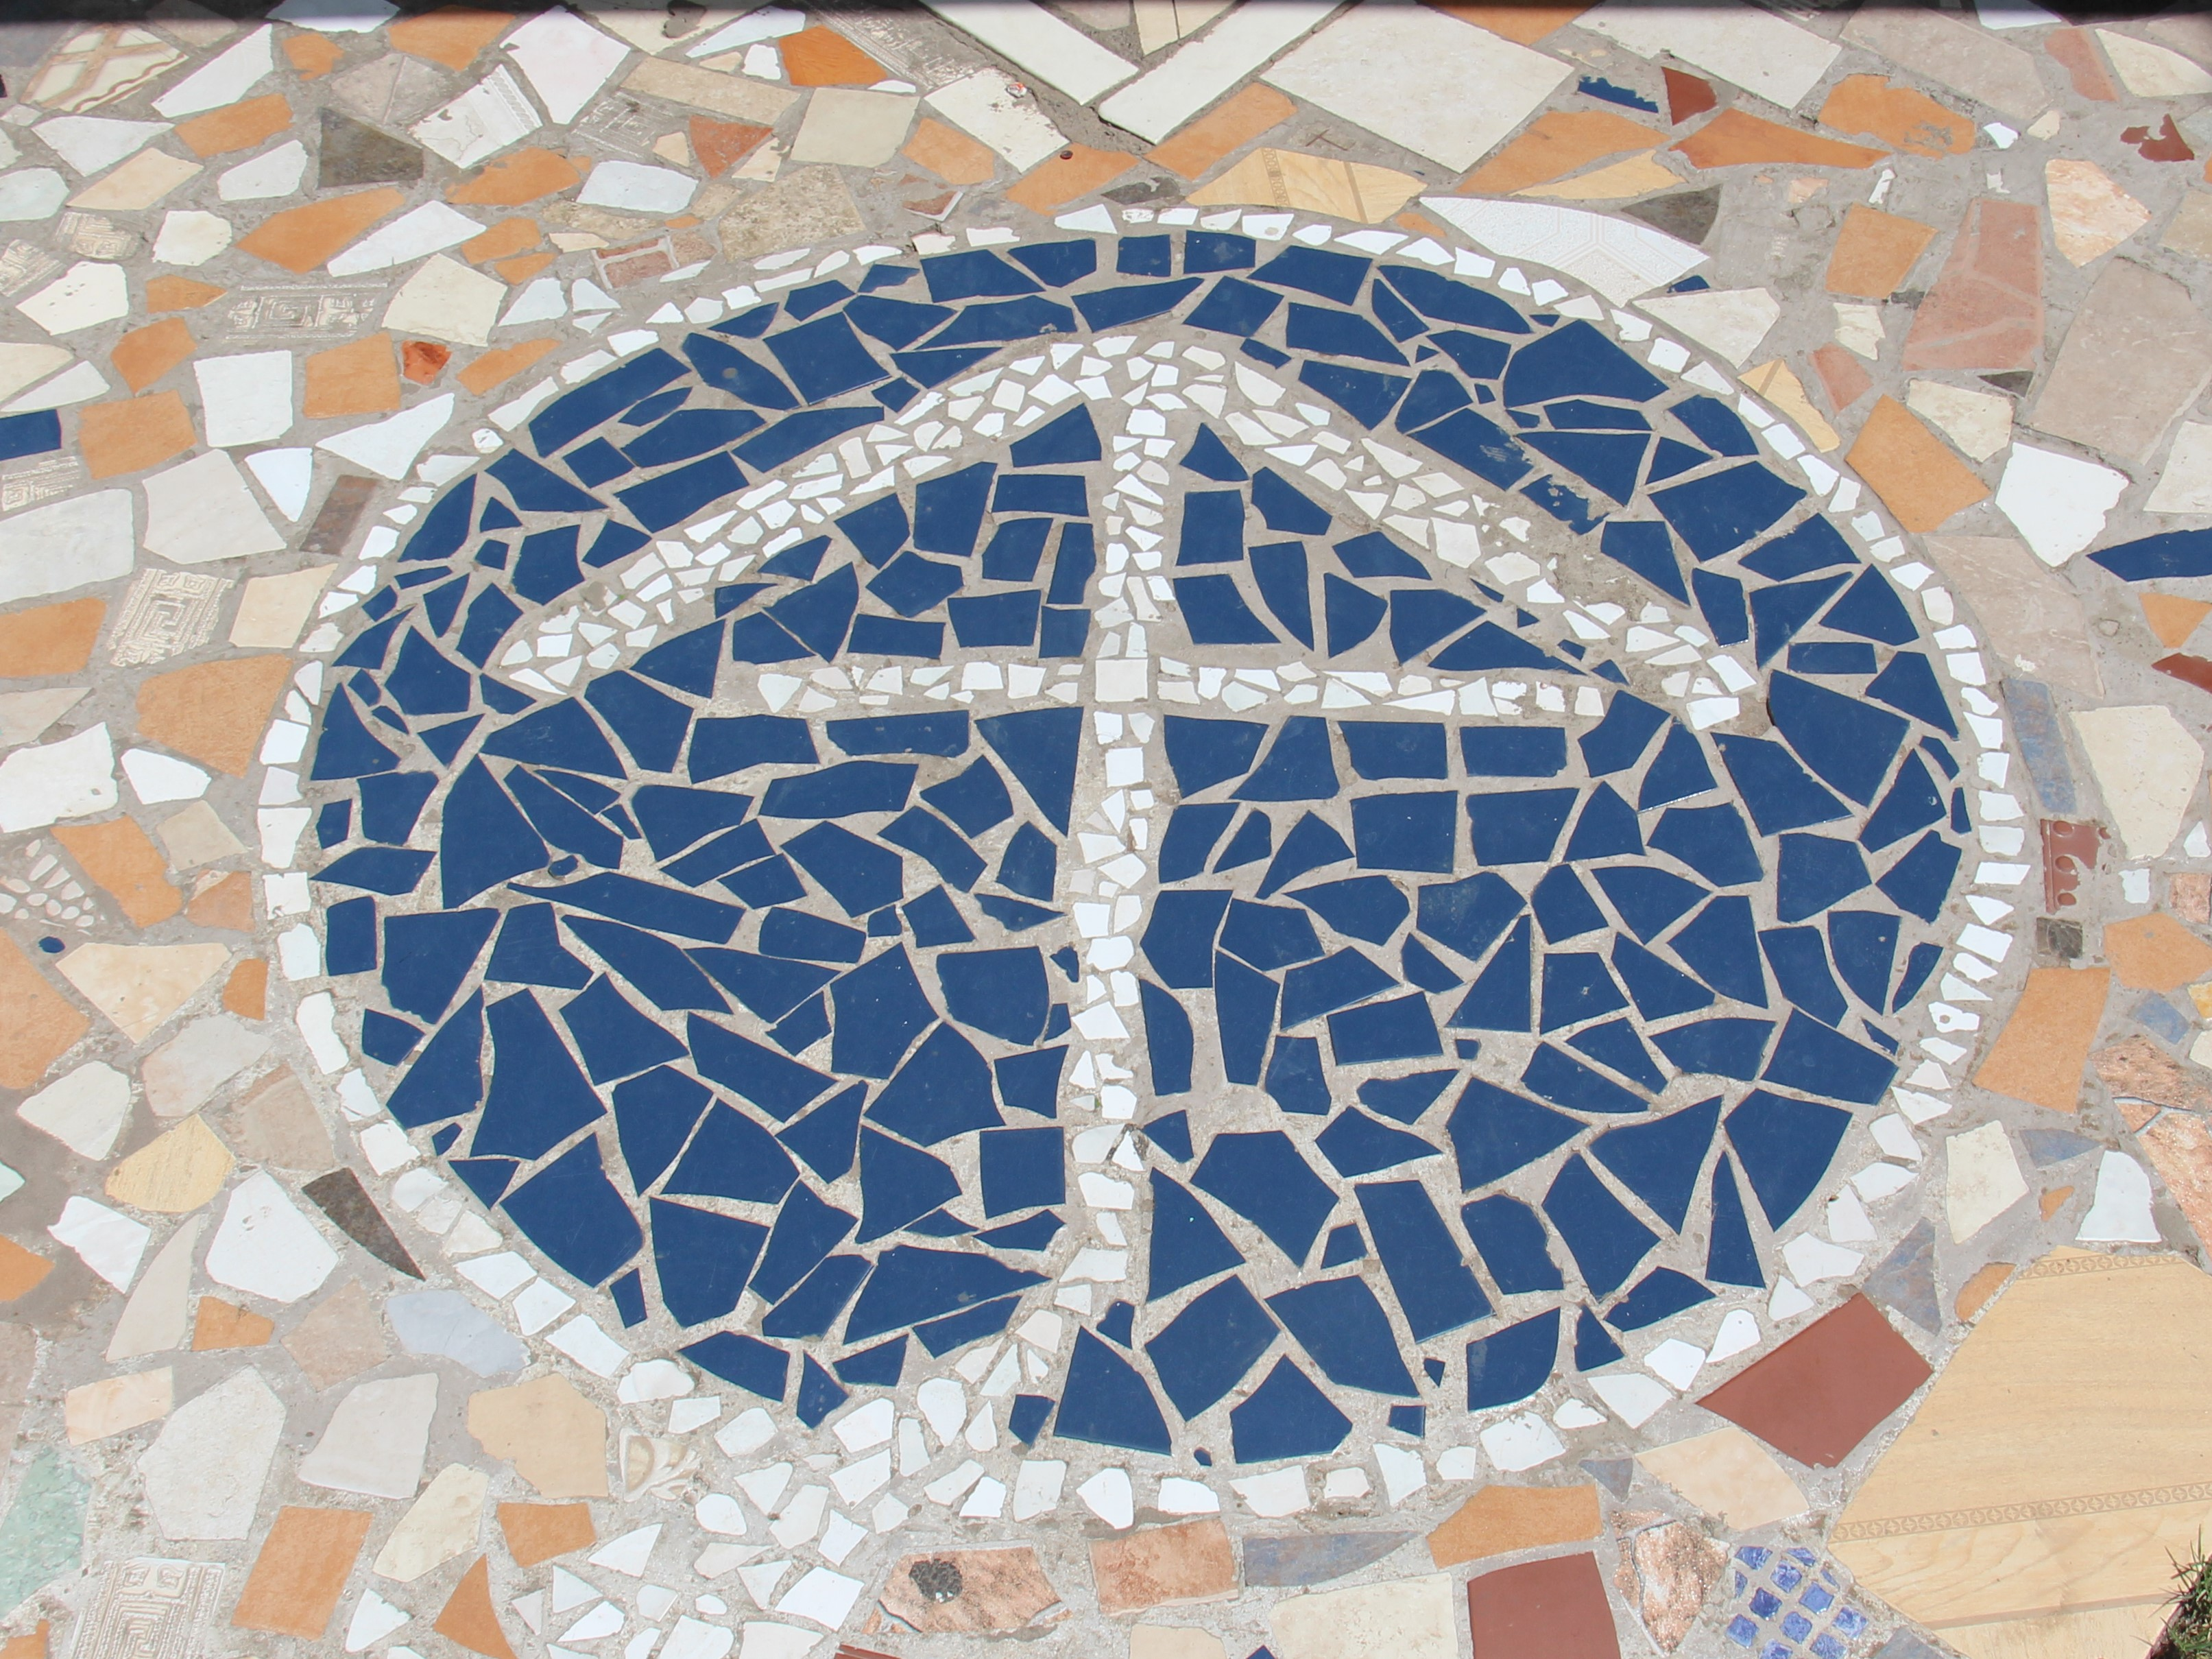 tiles, apostolate, MSC, logo